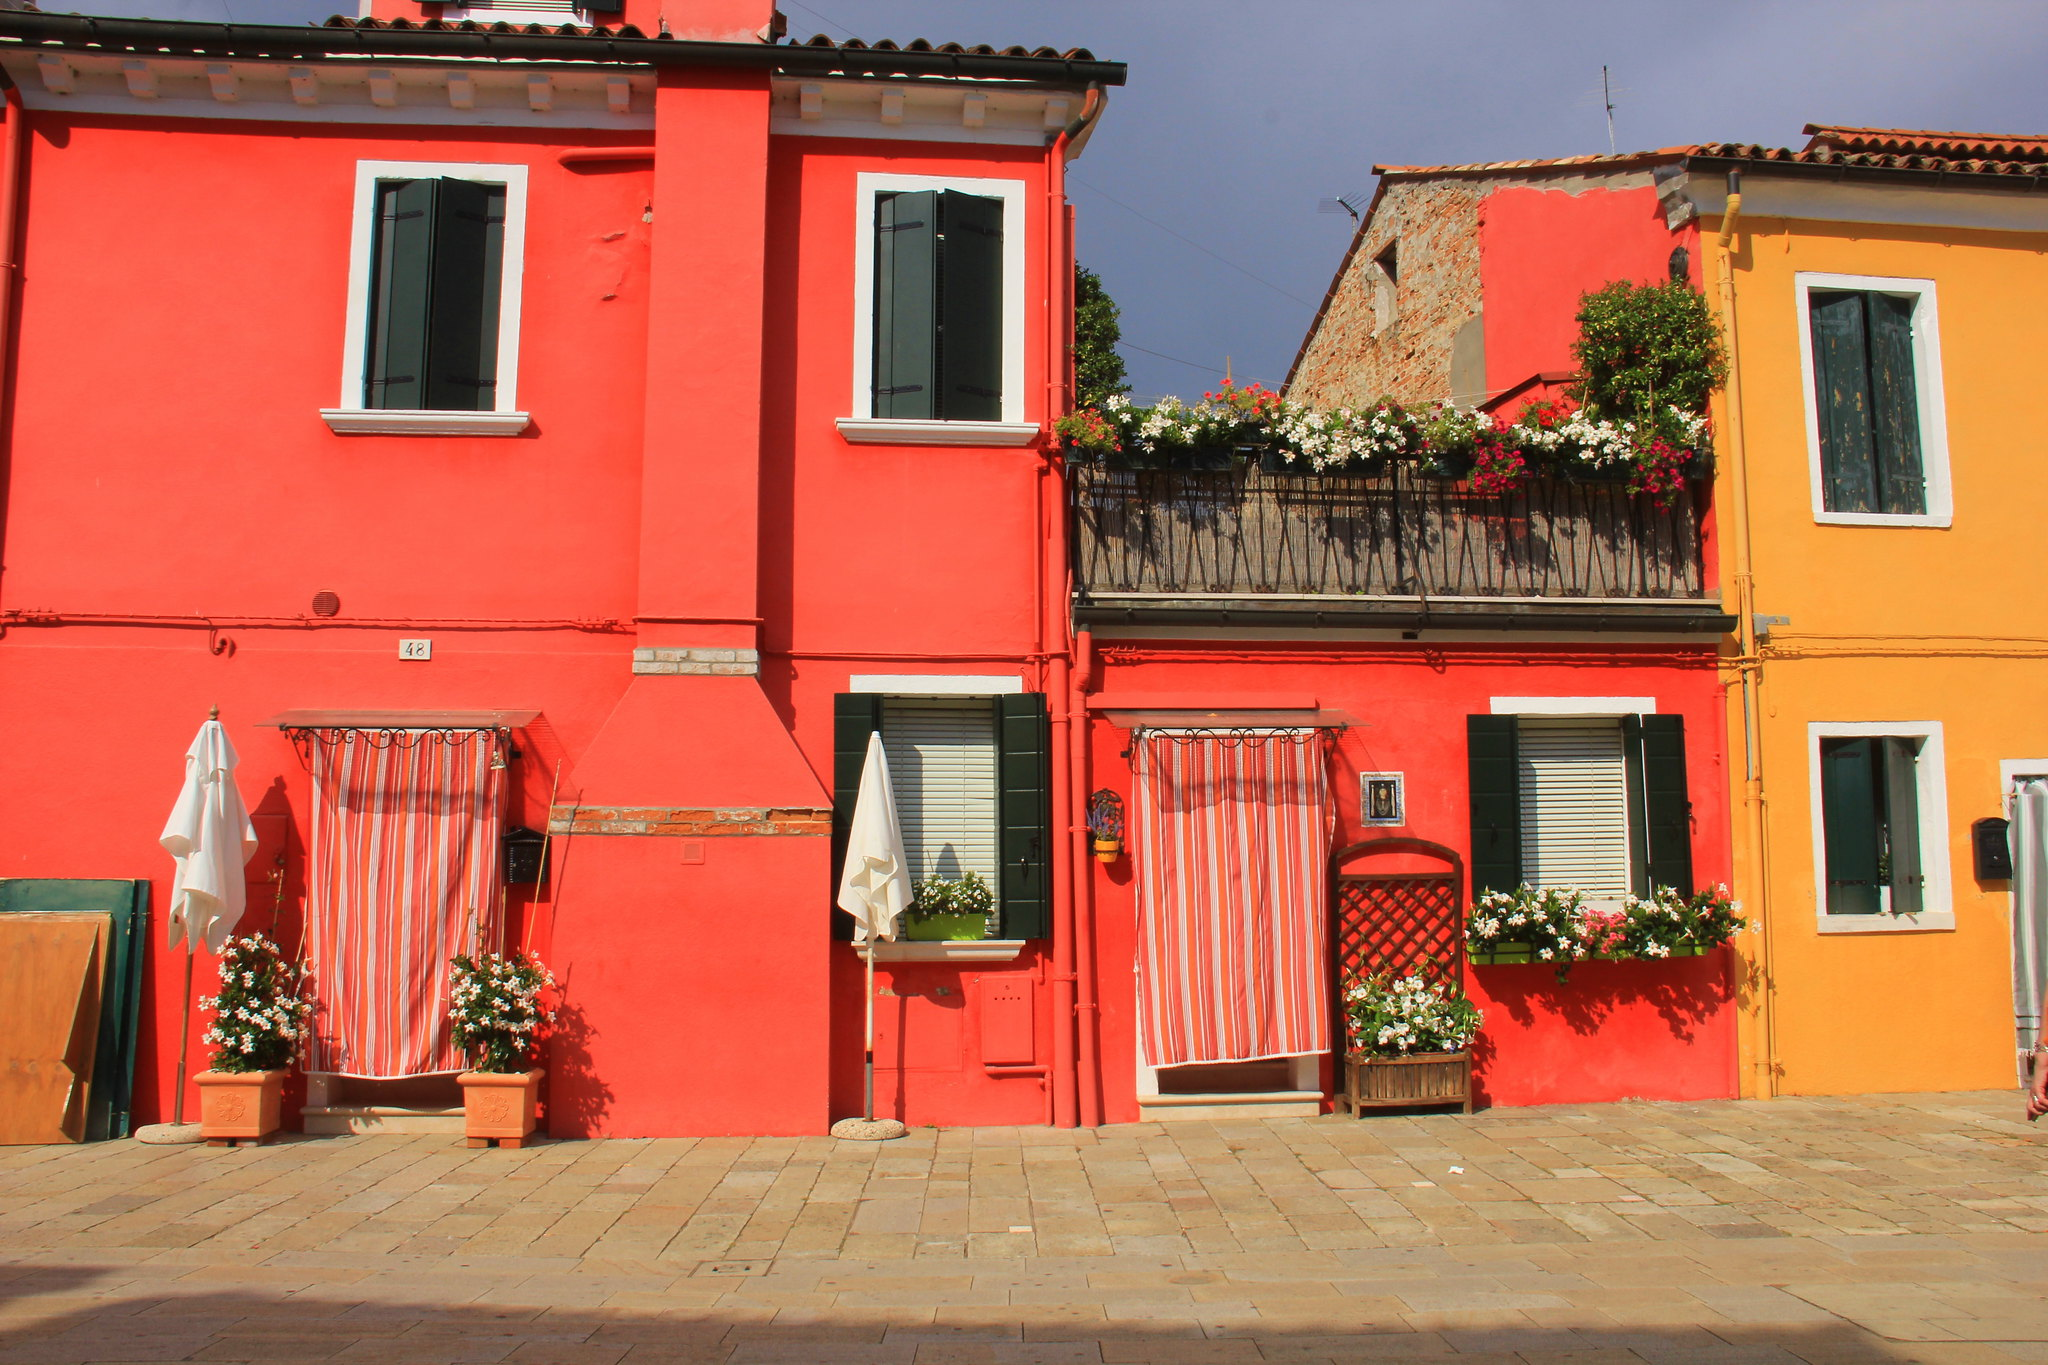 The Burano island is 40 minutes water bus ride from Venice